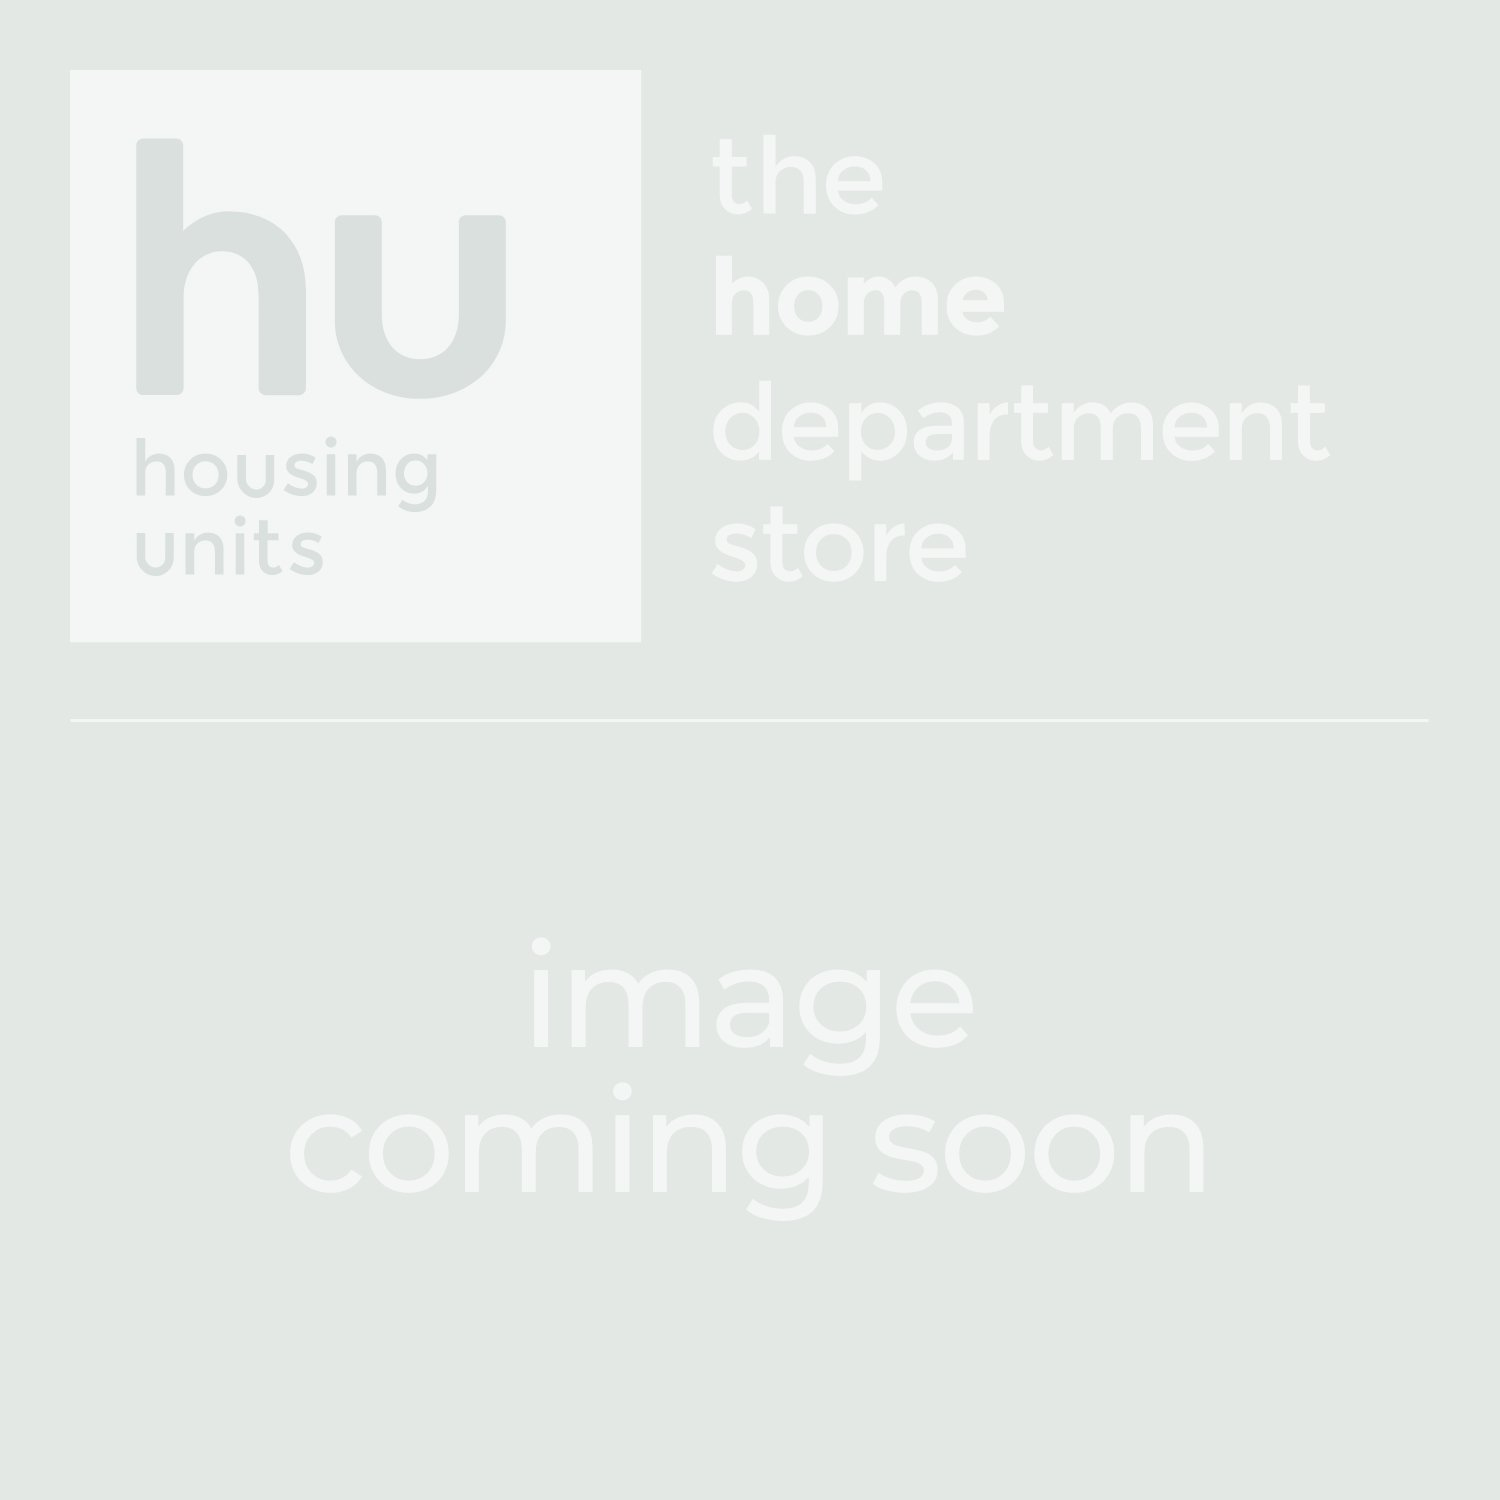 Celsi Puraflame Curved Wall Mounted LCD Electric Fire   Housing Units